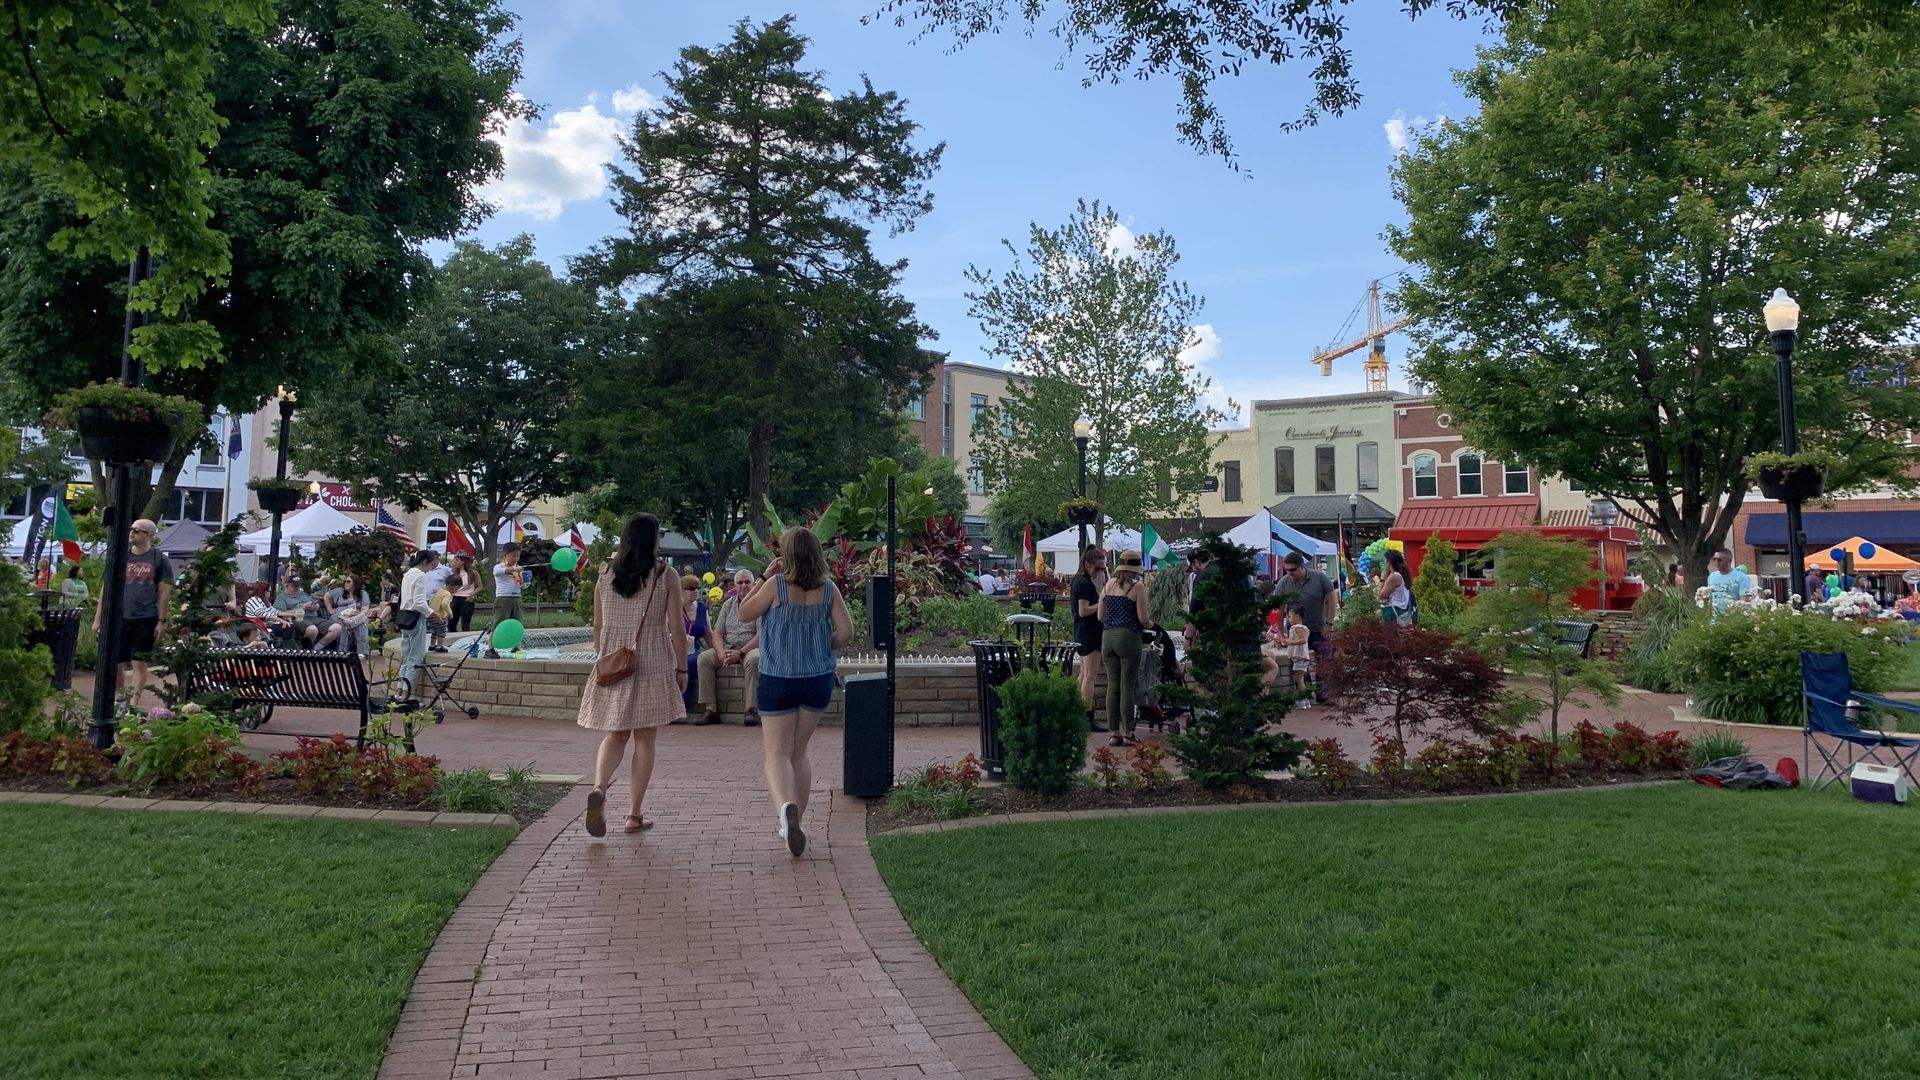 Crowds getting ready for First Friday at the downtown Bentonville square.